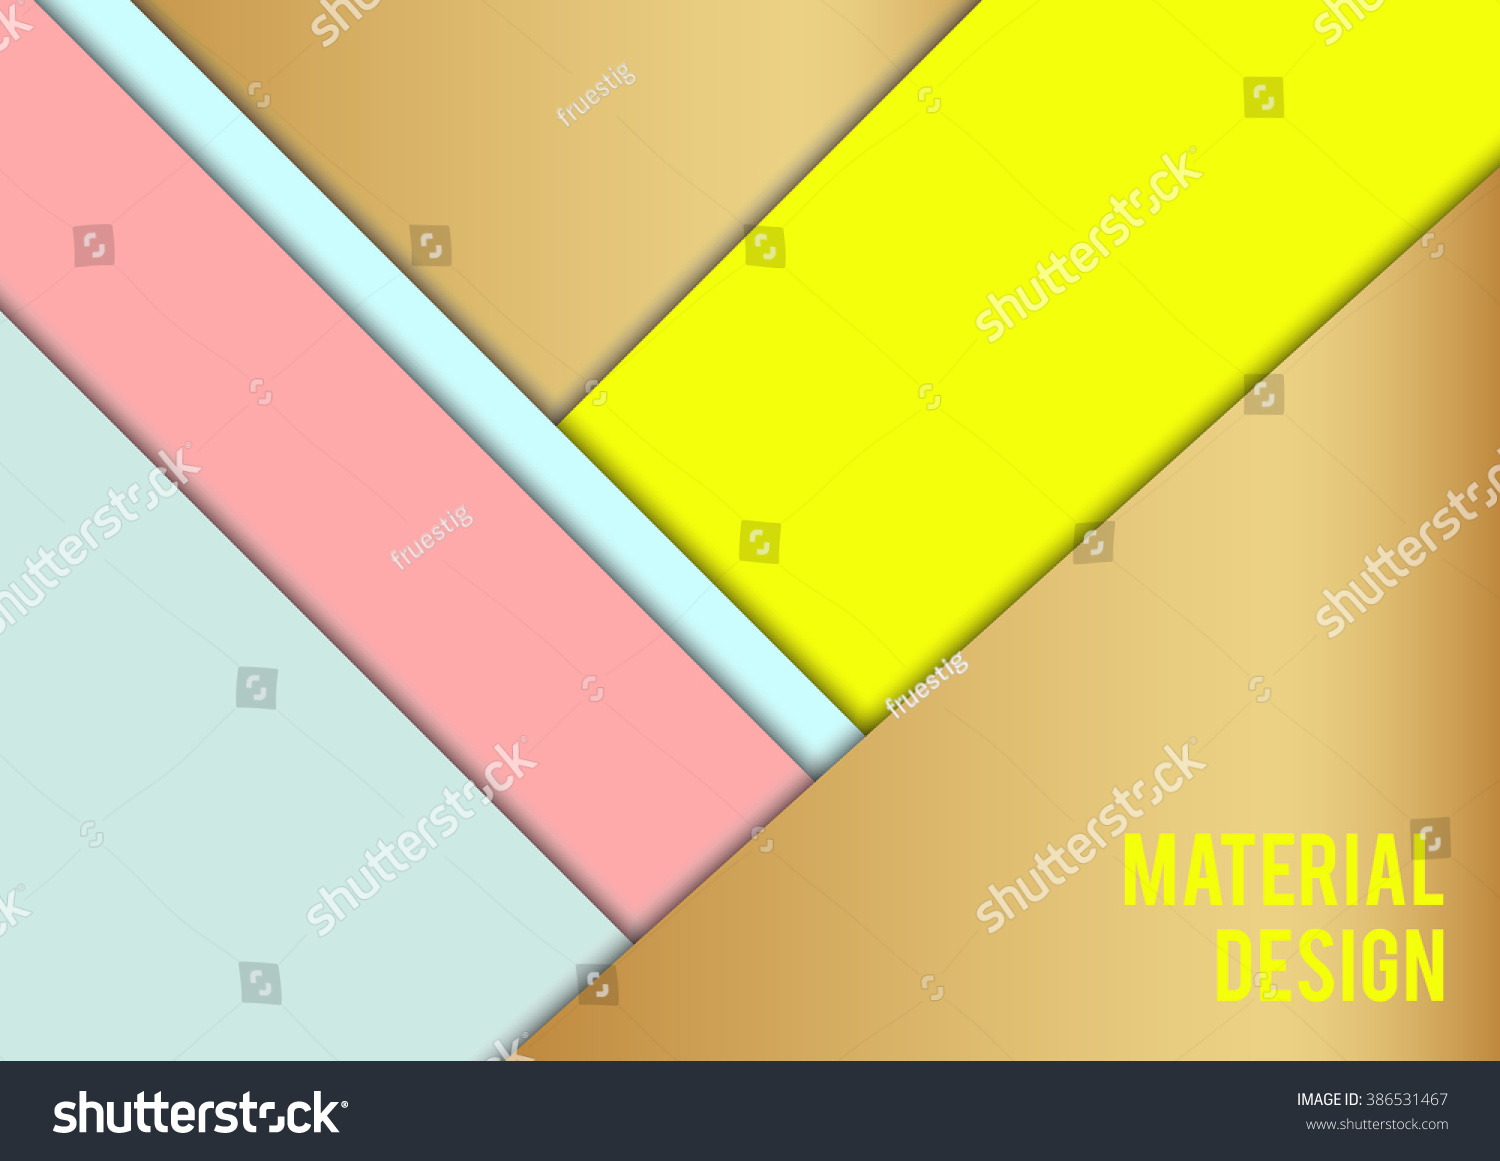 Modern Material Design Vector Background Made For Presentation Templates Invitation Wedding Greeting